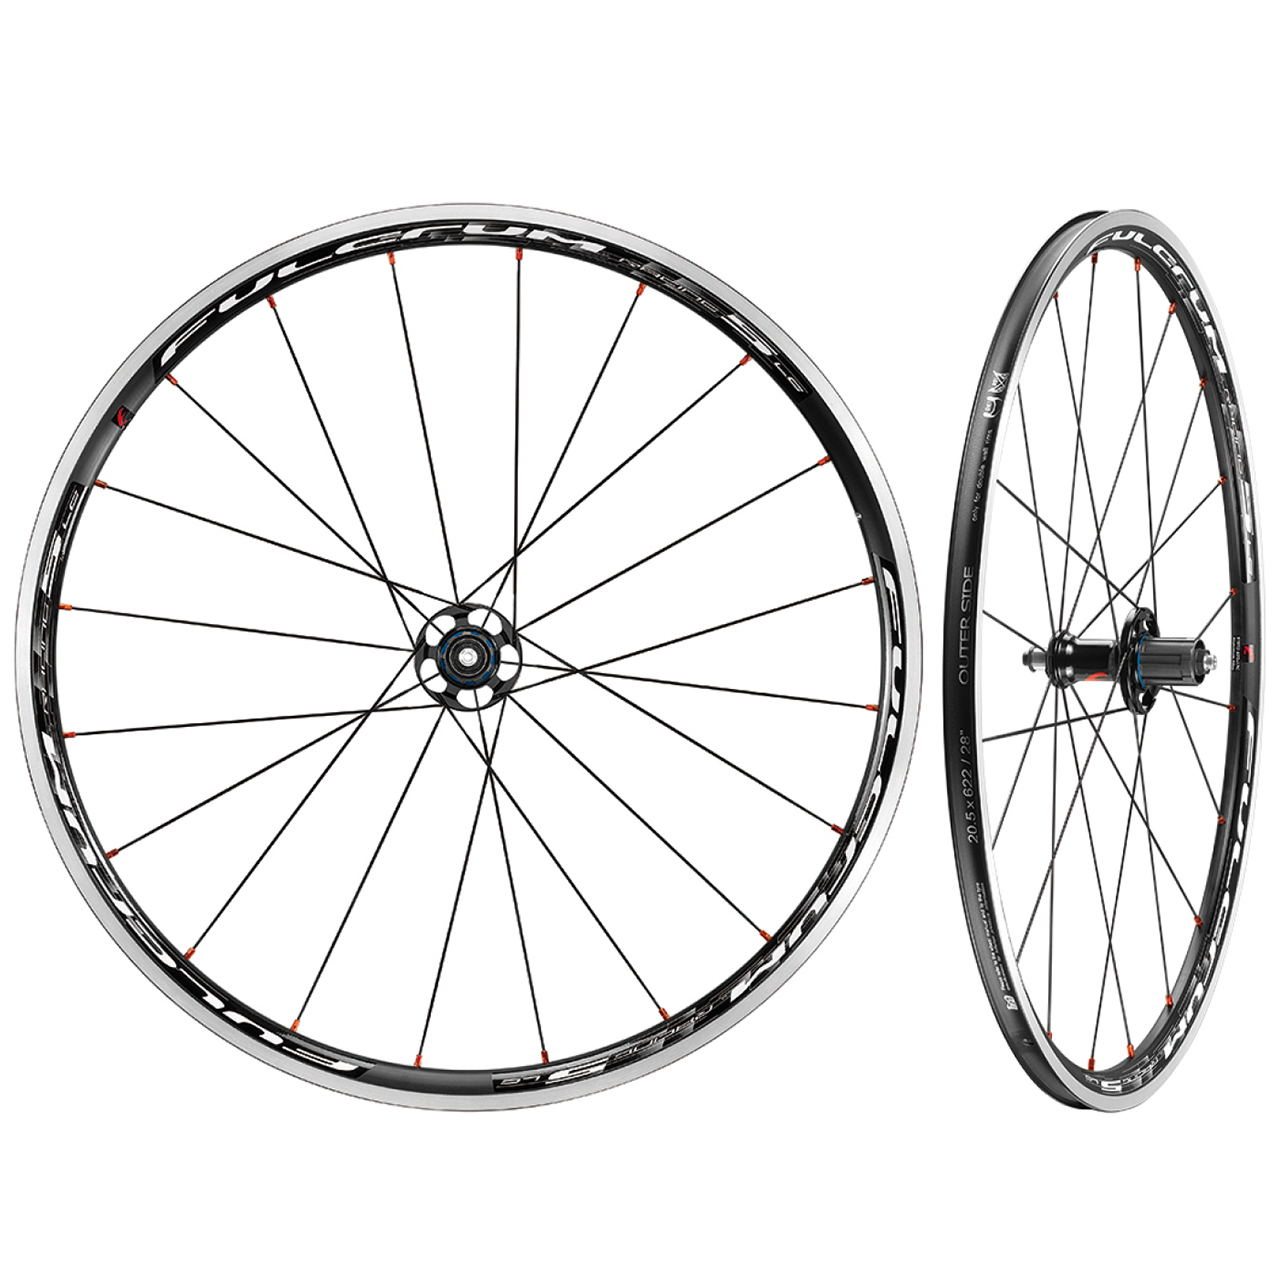 Fulcrum Racing 5 LG C17 Clincher Road Wheelset